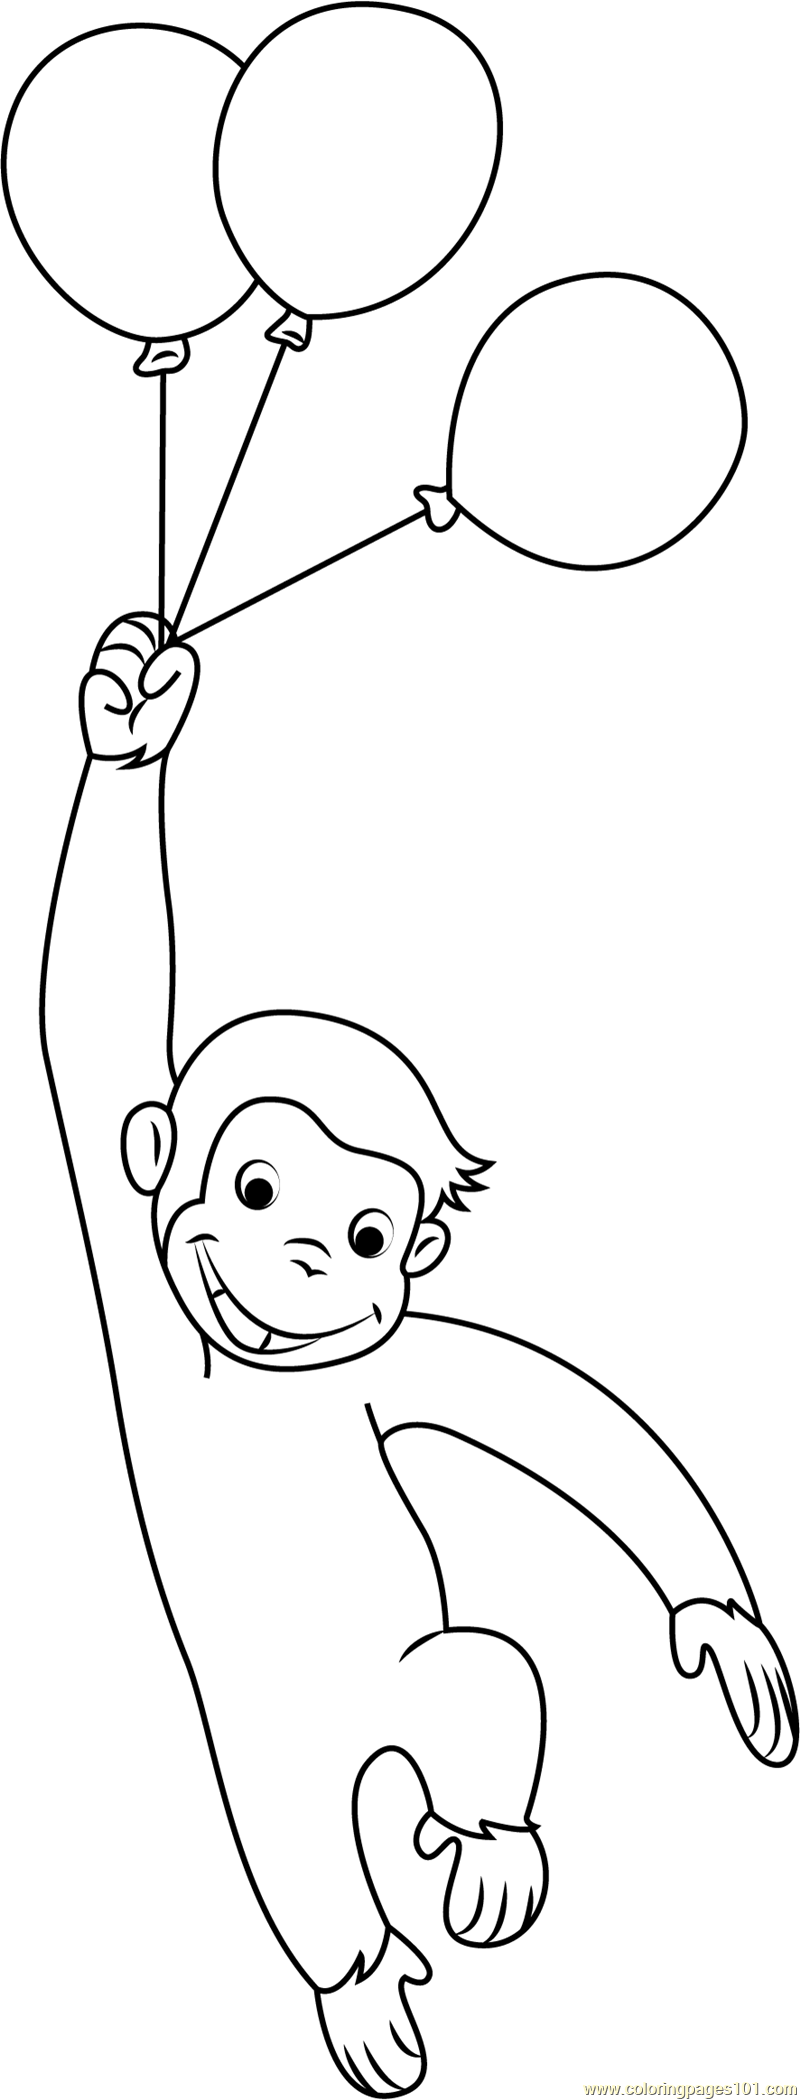 curious coloring pages - photo#13